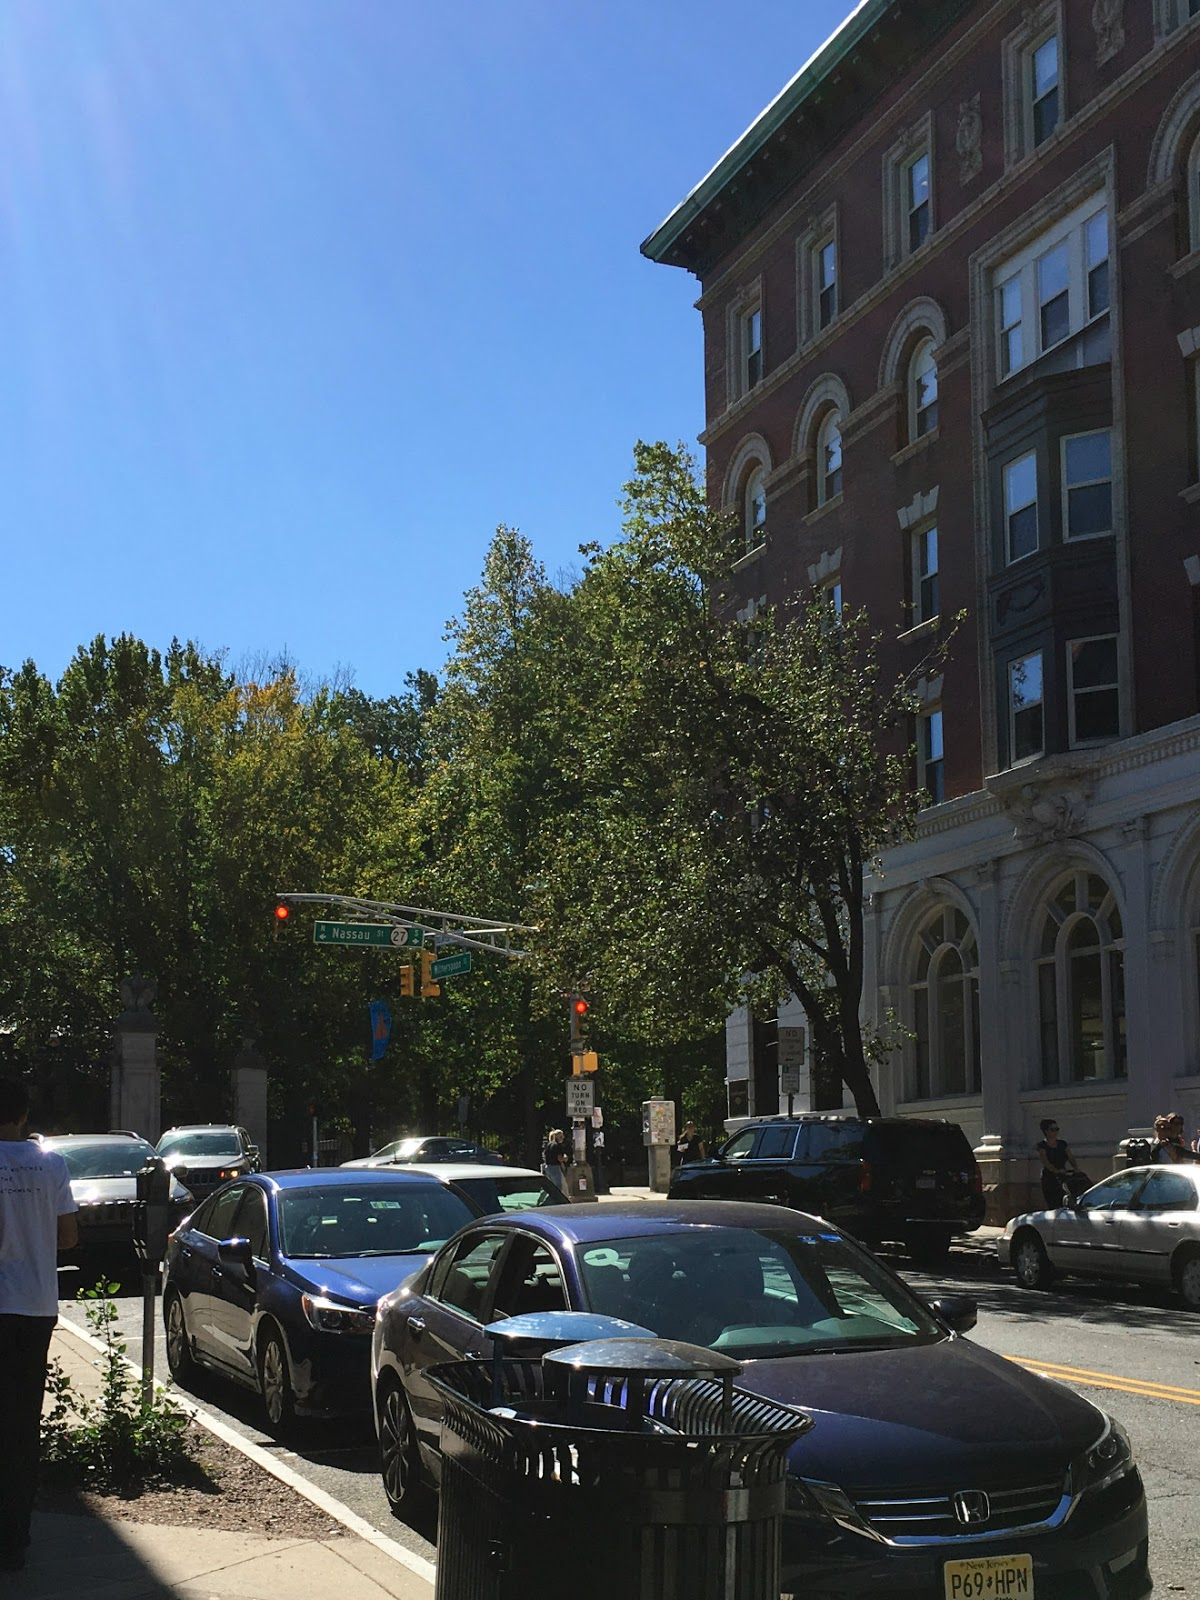 Places to Spend a Fall Day - Downtown Princeton